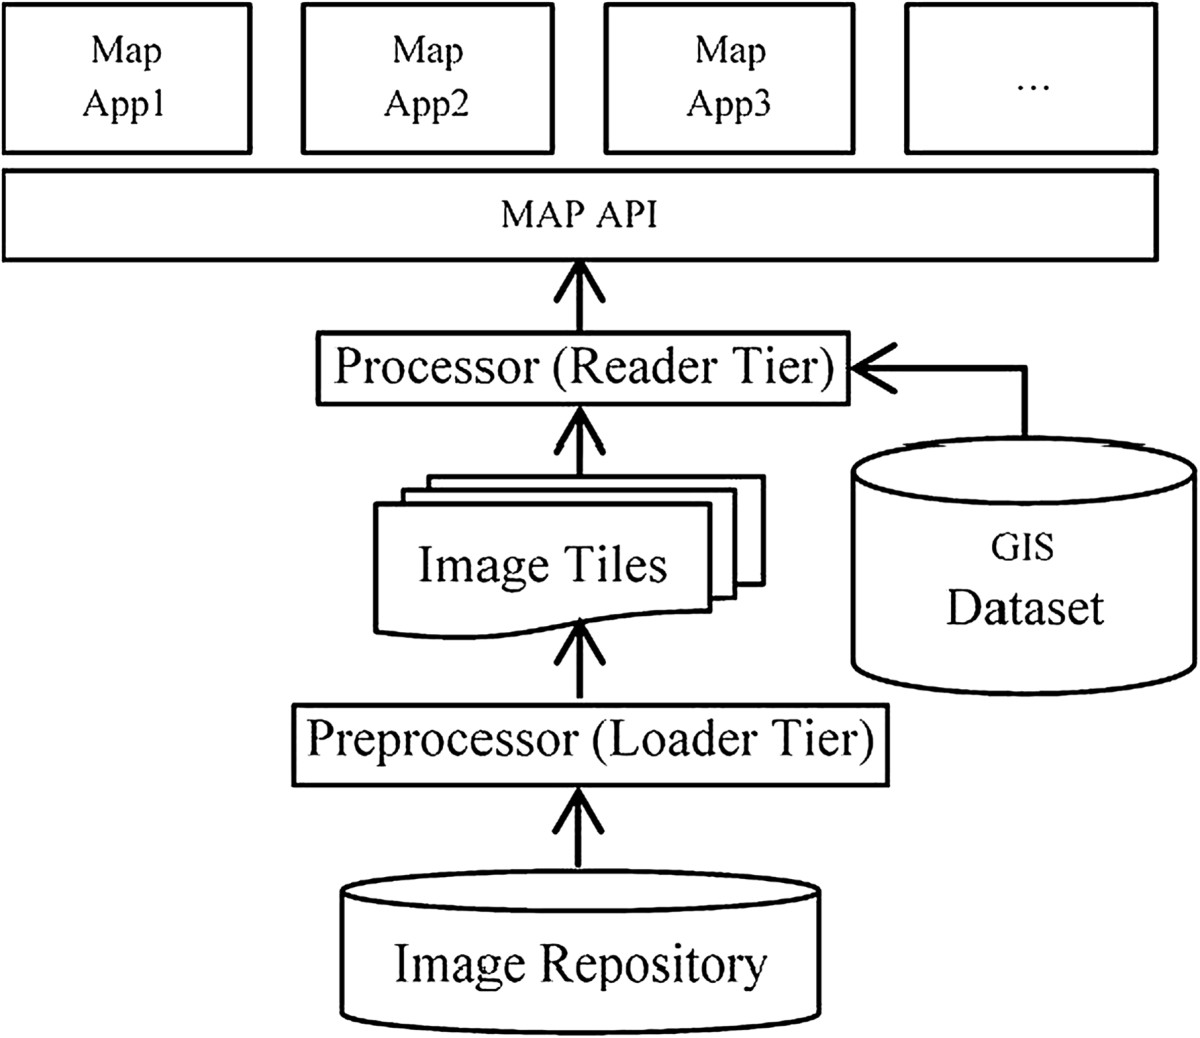 https://static-content.springer.com/image/art%3A10.1186%2F2196-1115-1-4/MediaObjects/40537_2013_Article_3_Fig1_HTML.jpg